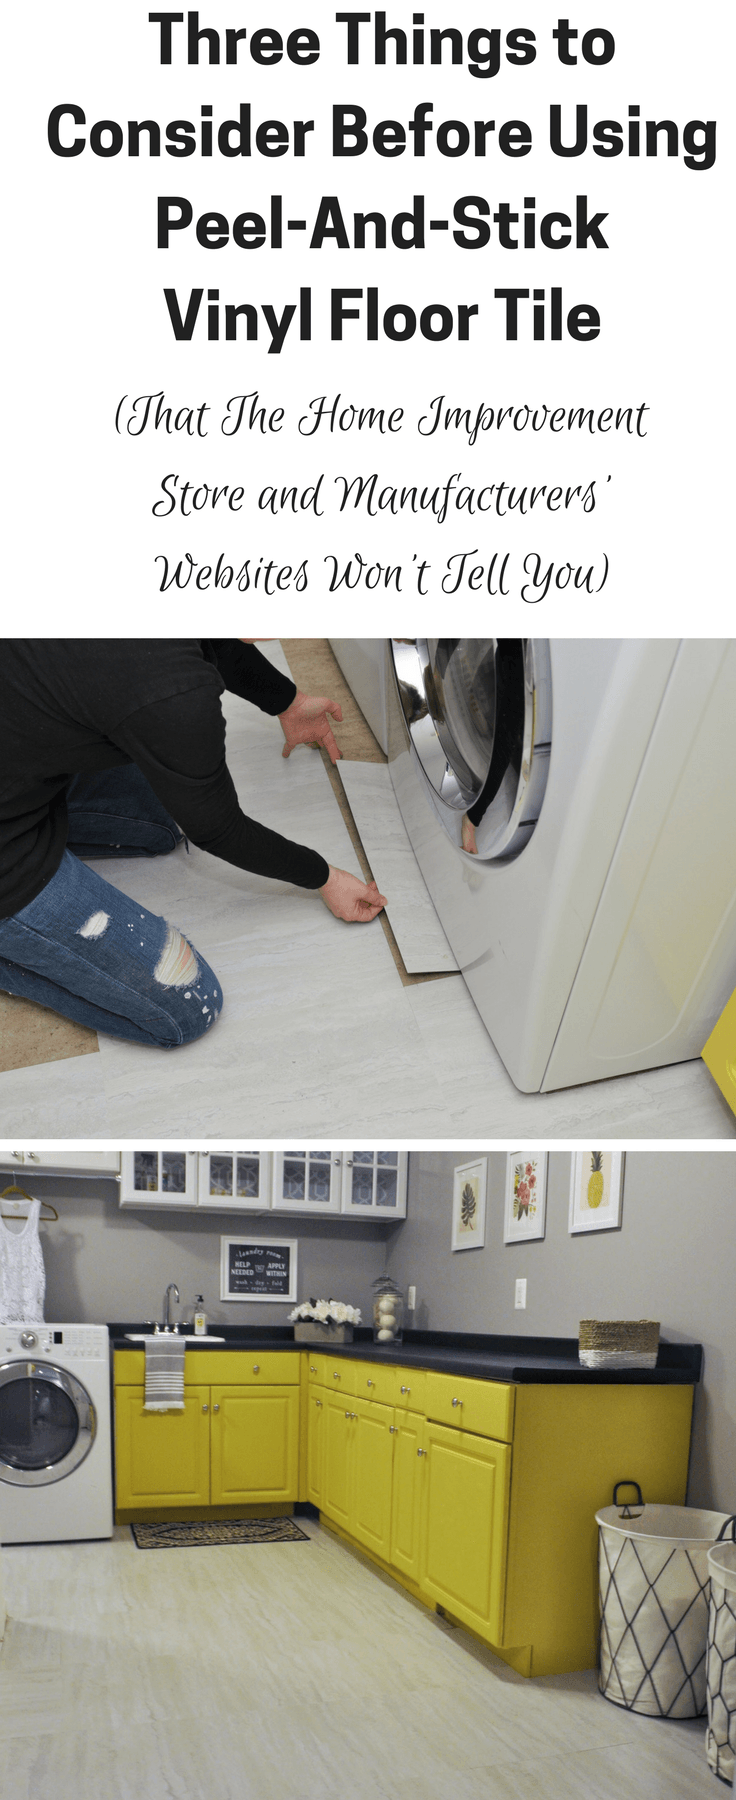 3 things you need to know before using peel and stick floor tile 3 things to consider before using peel and stick vinyl floor tile plus dailygadgetfo Choice Image